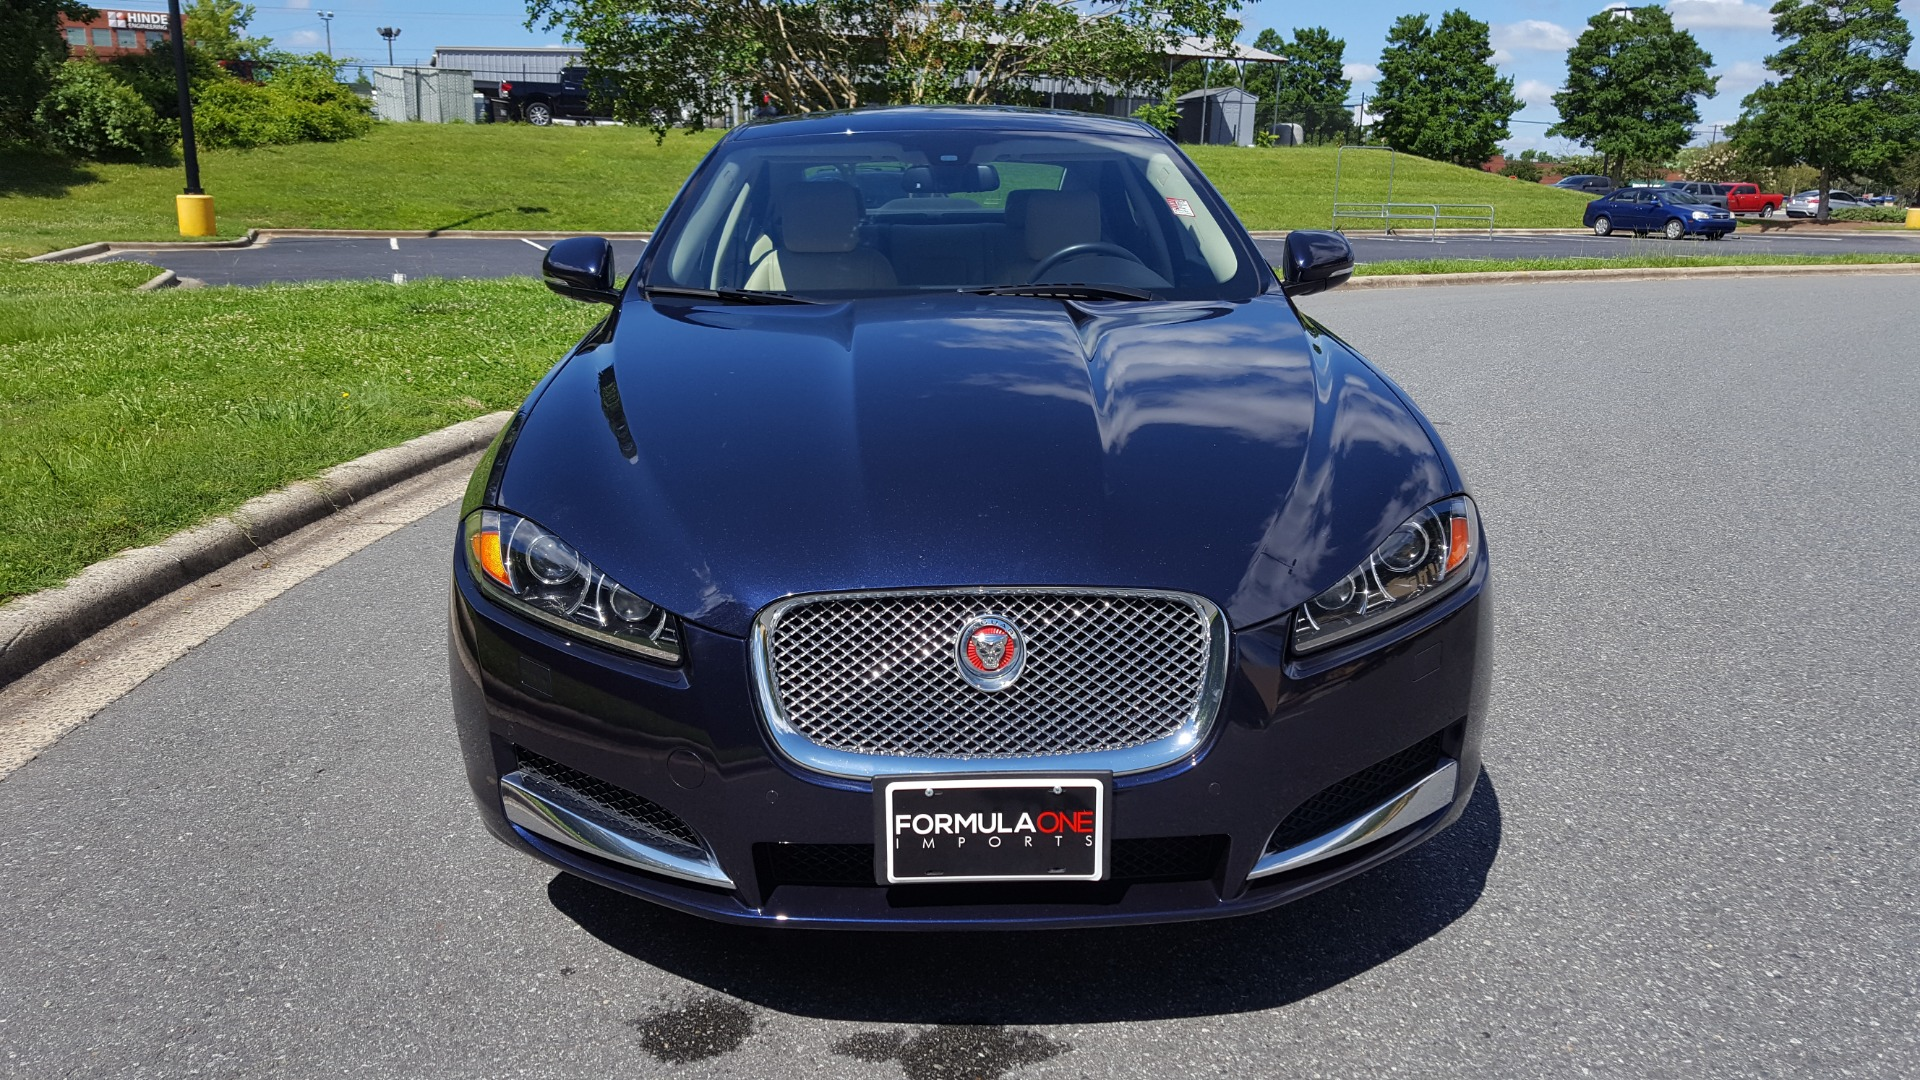 Used 2014 Jaguar XF V6 SC AWD PREMIUM / NAV / COLD CLIMATE PKG / VISION / REARVIEW for sale $18,995 at Formula Imports in Charlotte NC 28227 4